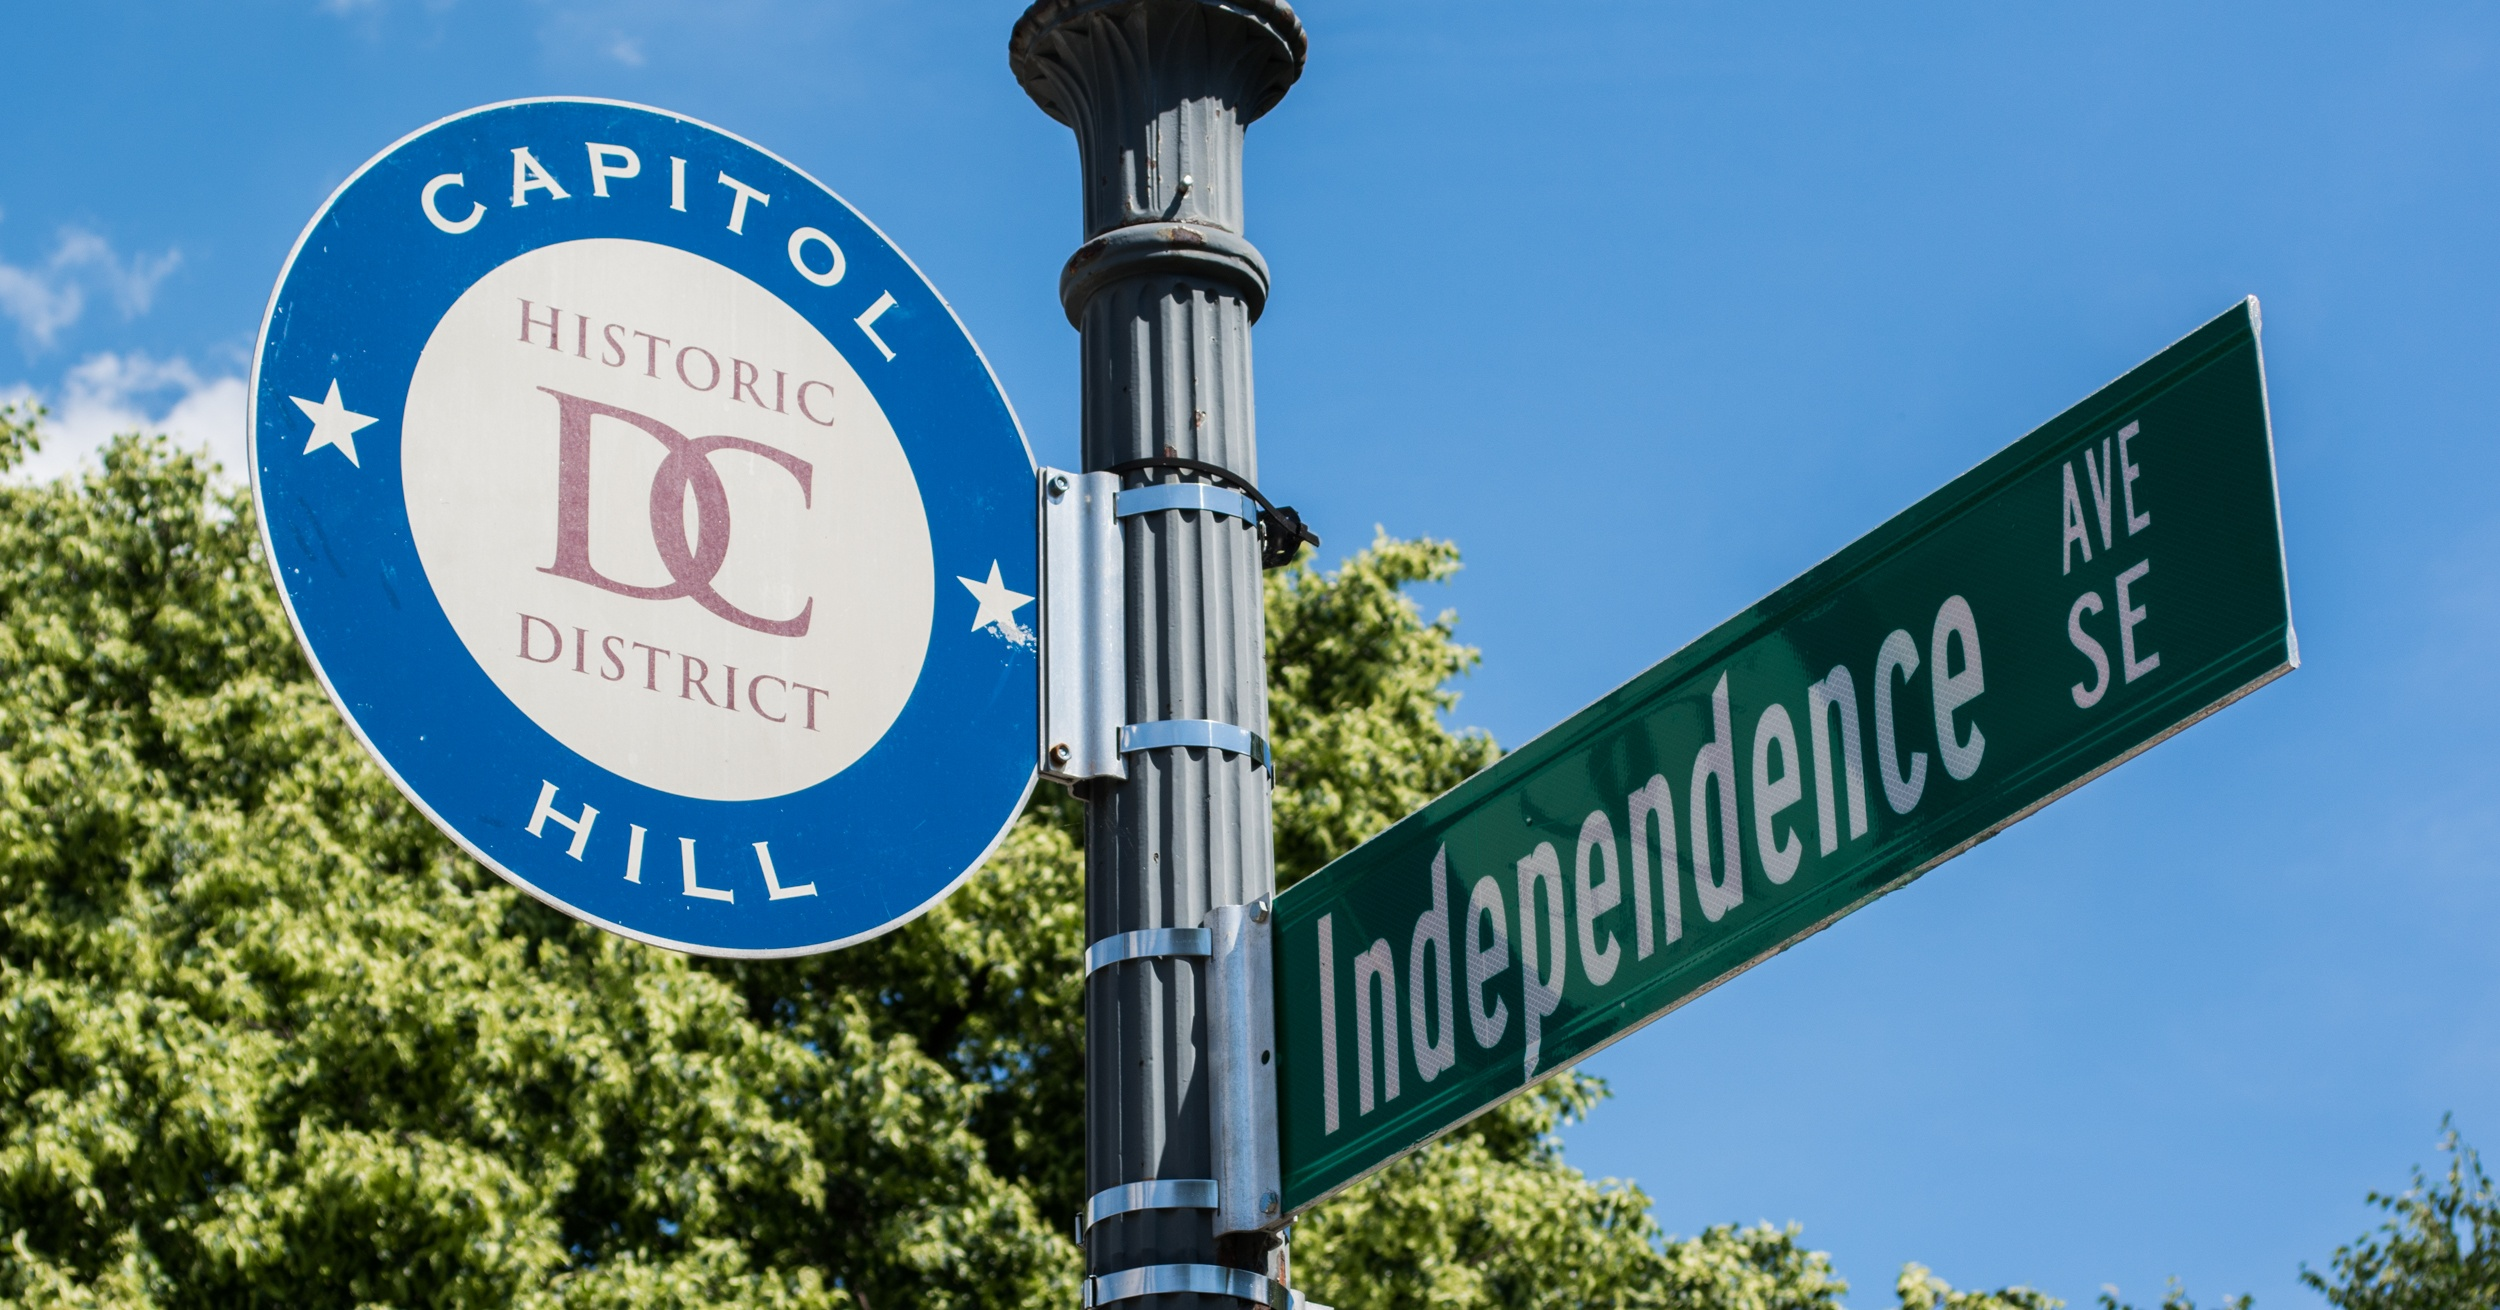 Capitol_Hill_HD_sign_at_500_Independence_Ave_SE_-_Washington_DC.jpg